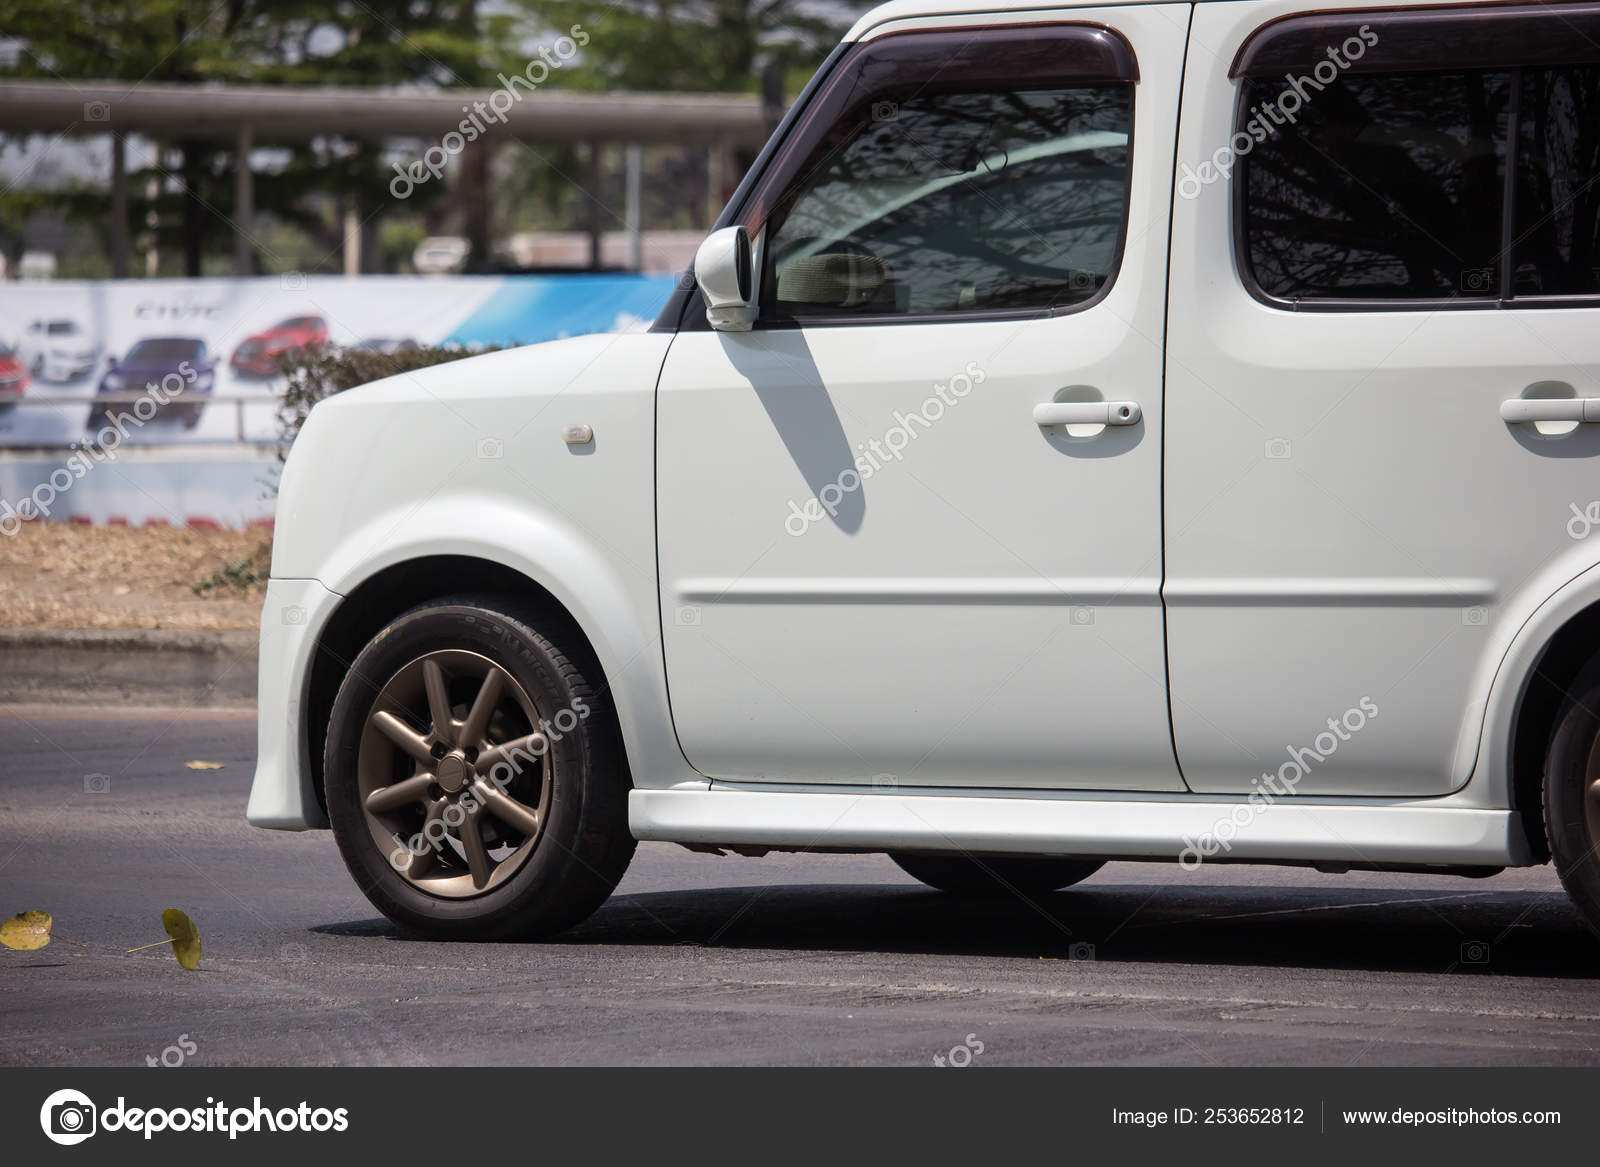 95 All New Nissan Cube 2019 Model